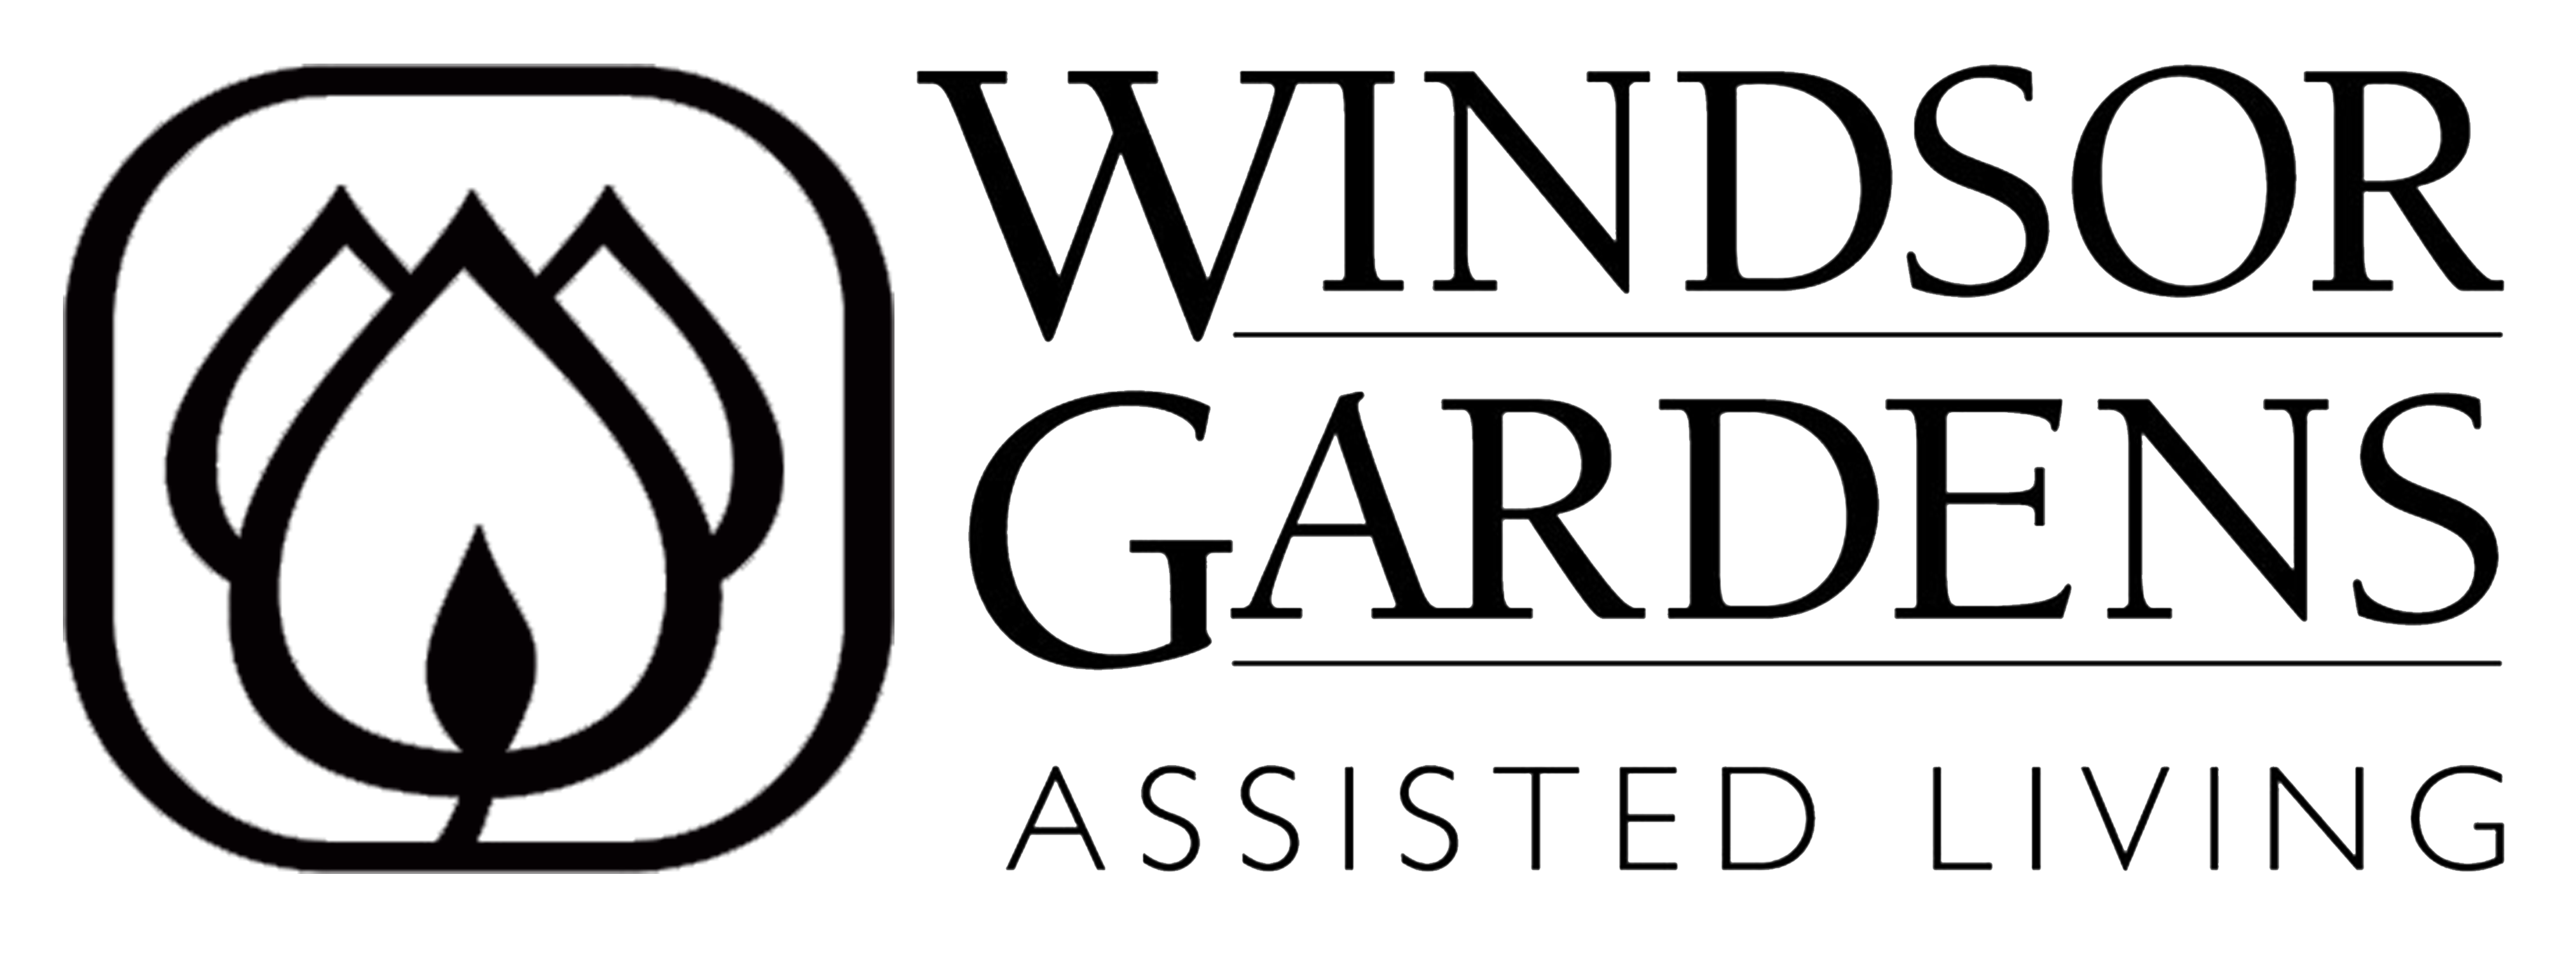 windsor gardens assisted living in knoxville tn come let us treat you like royalty - Windsor Gardens Nursing Home